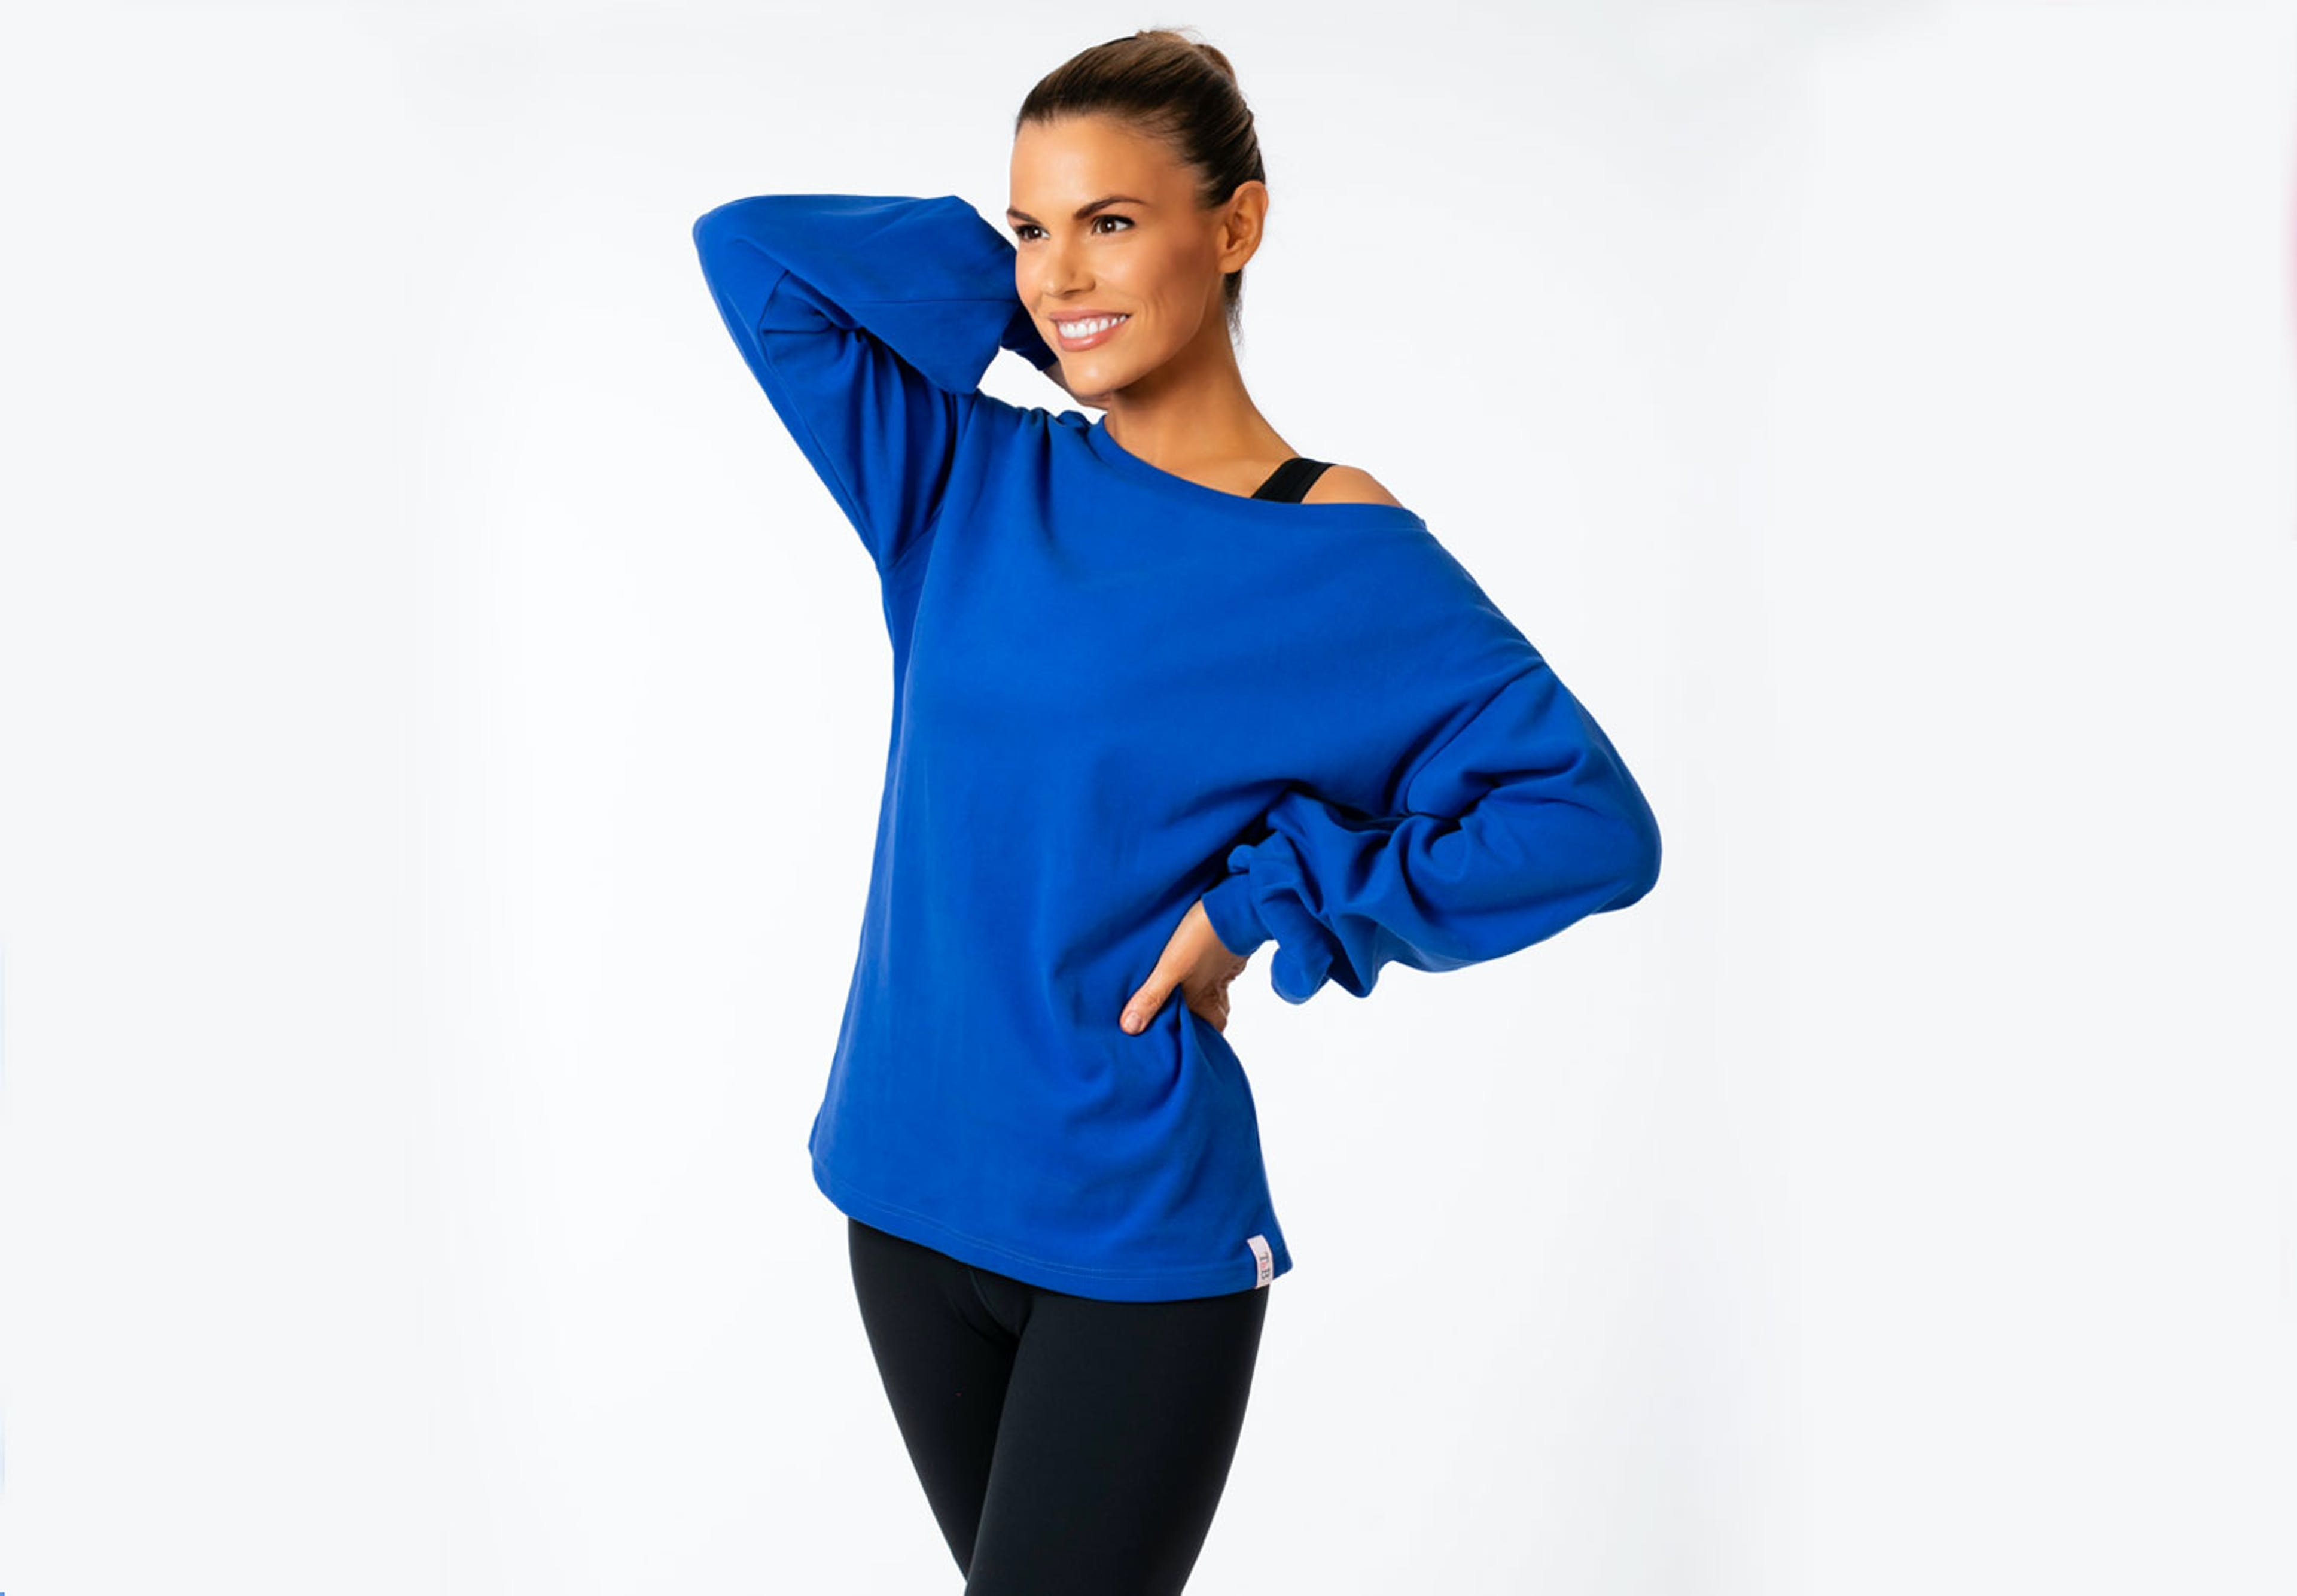 Discover our wide selection of Trendy and Bendy premium activewear online today. Clothing designed in Ireland for yoga, pilates, running & women on the go.